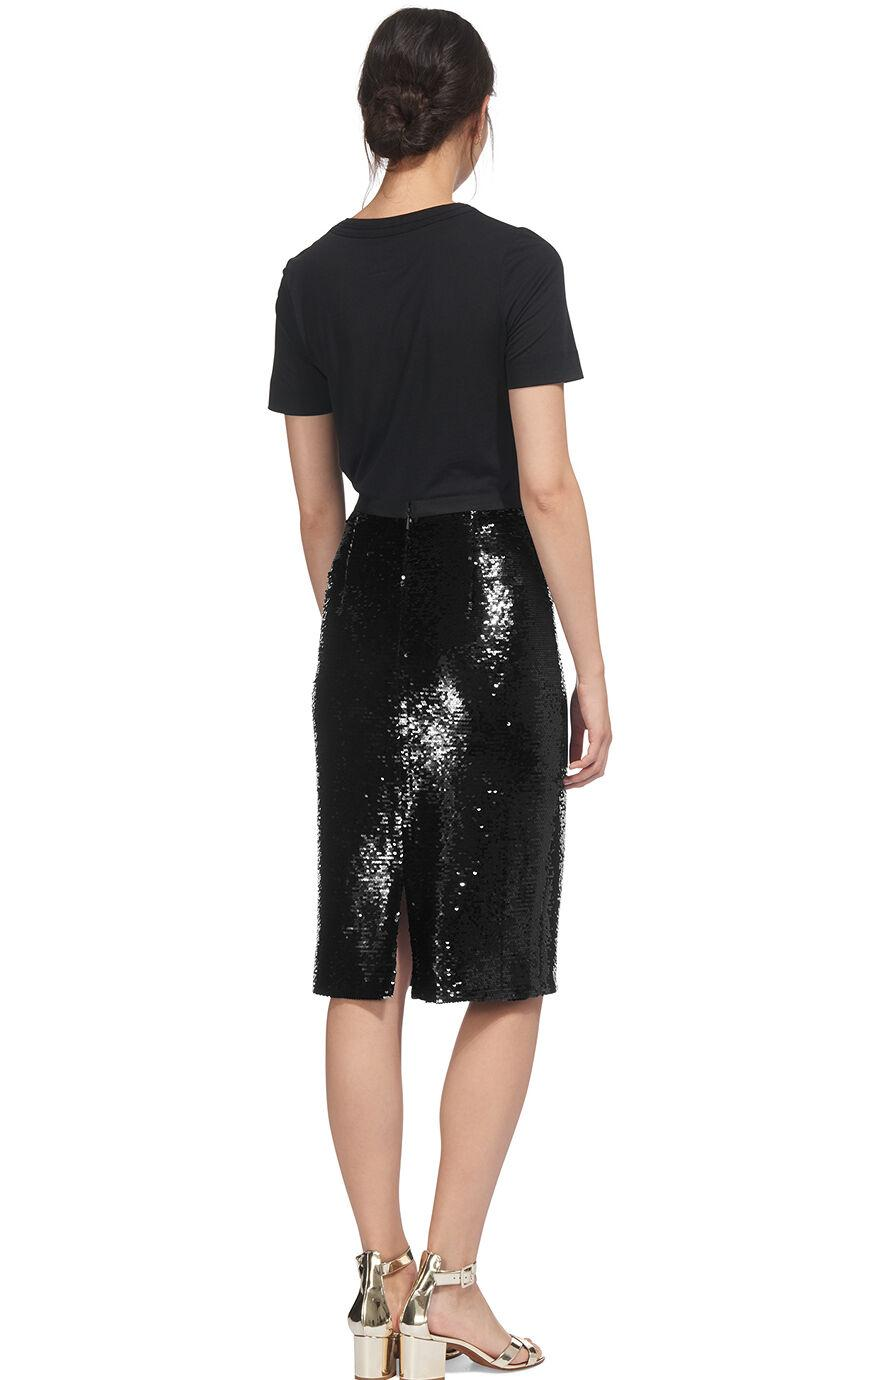 0273ab16dd04 ... Sequin Pencil Skirt - Lyst. Visit Whistles. Tap to visit site